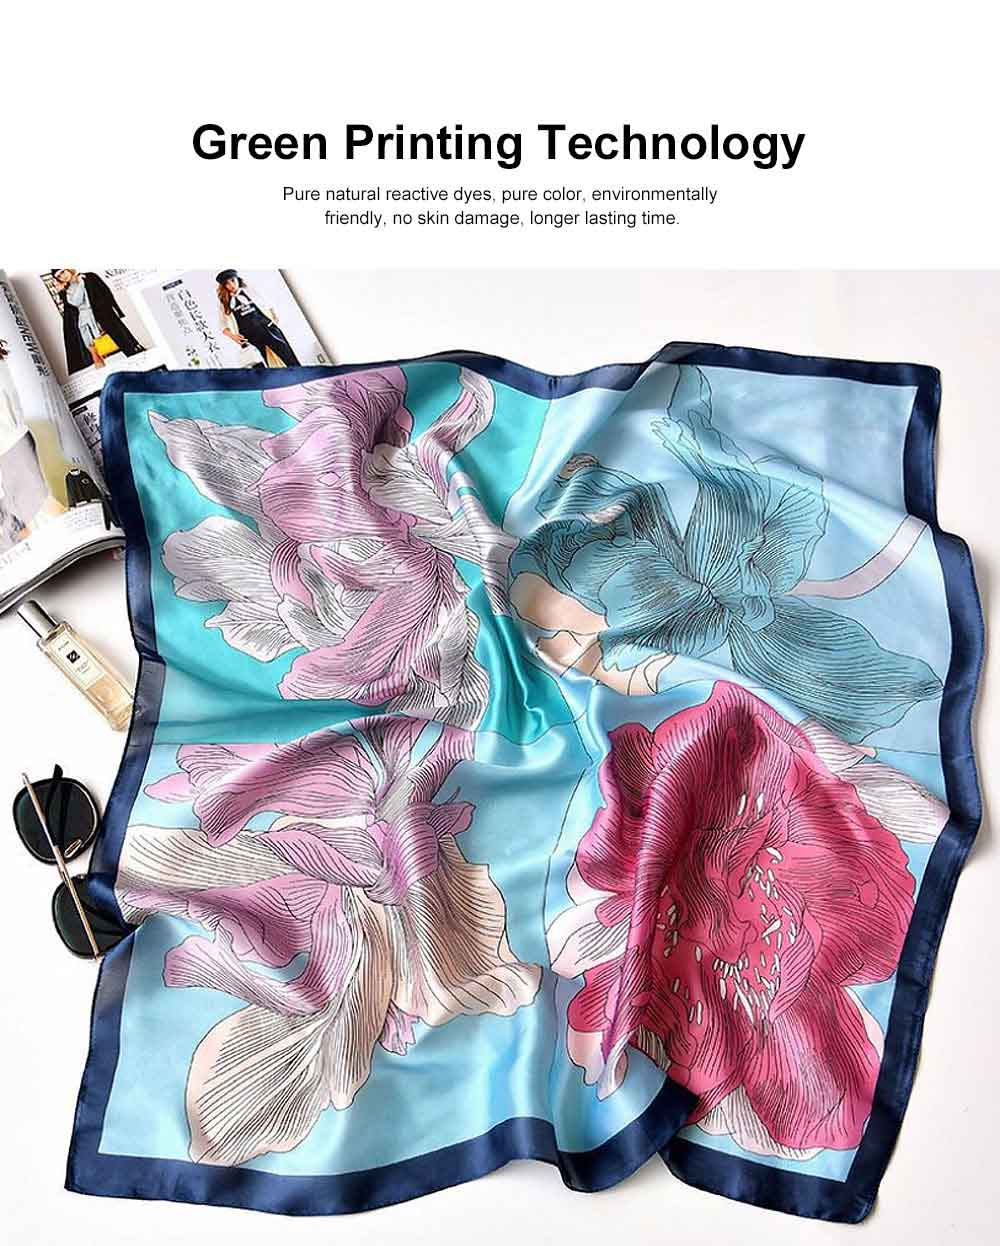 Chiffon Printed Scarf for Women with Delicate Patterns, New Retro Versatile Scarf for Different Occasions. 3